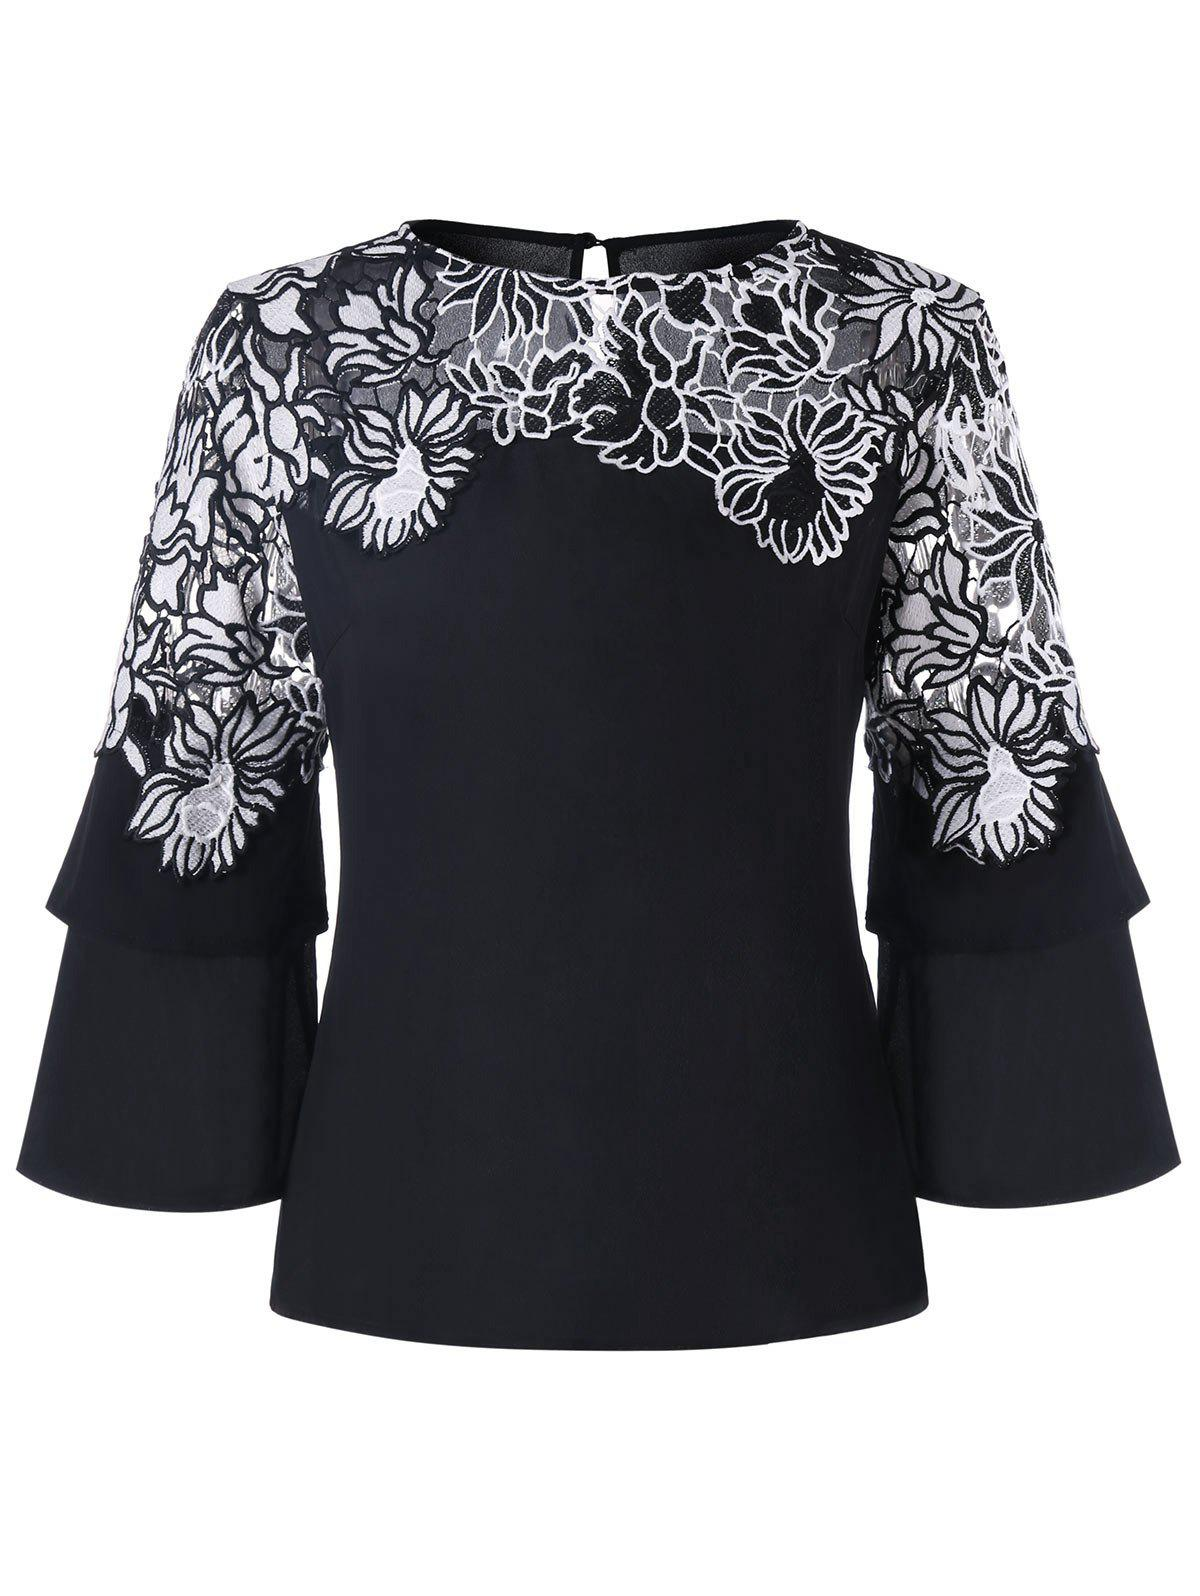 Applique Layered Bell Sleeve Top - BLACK M